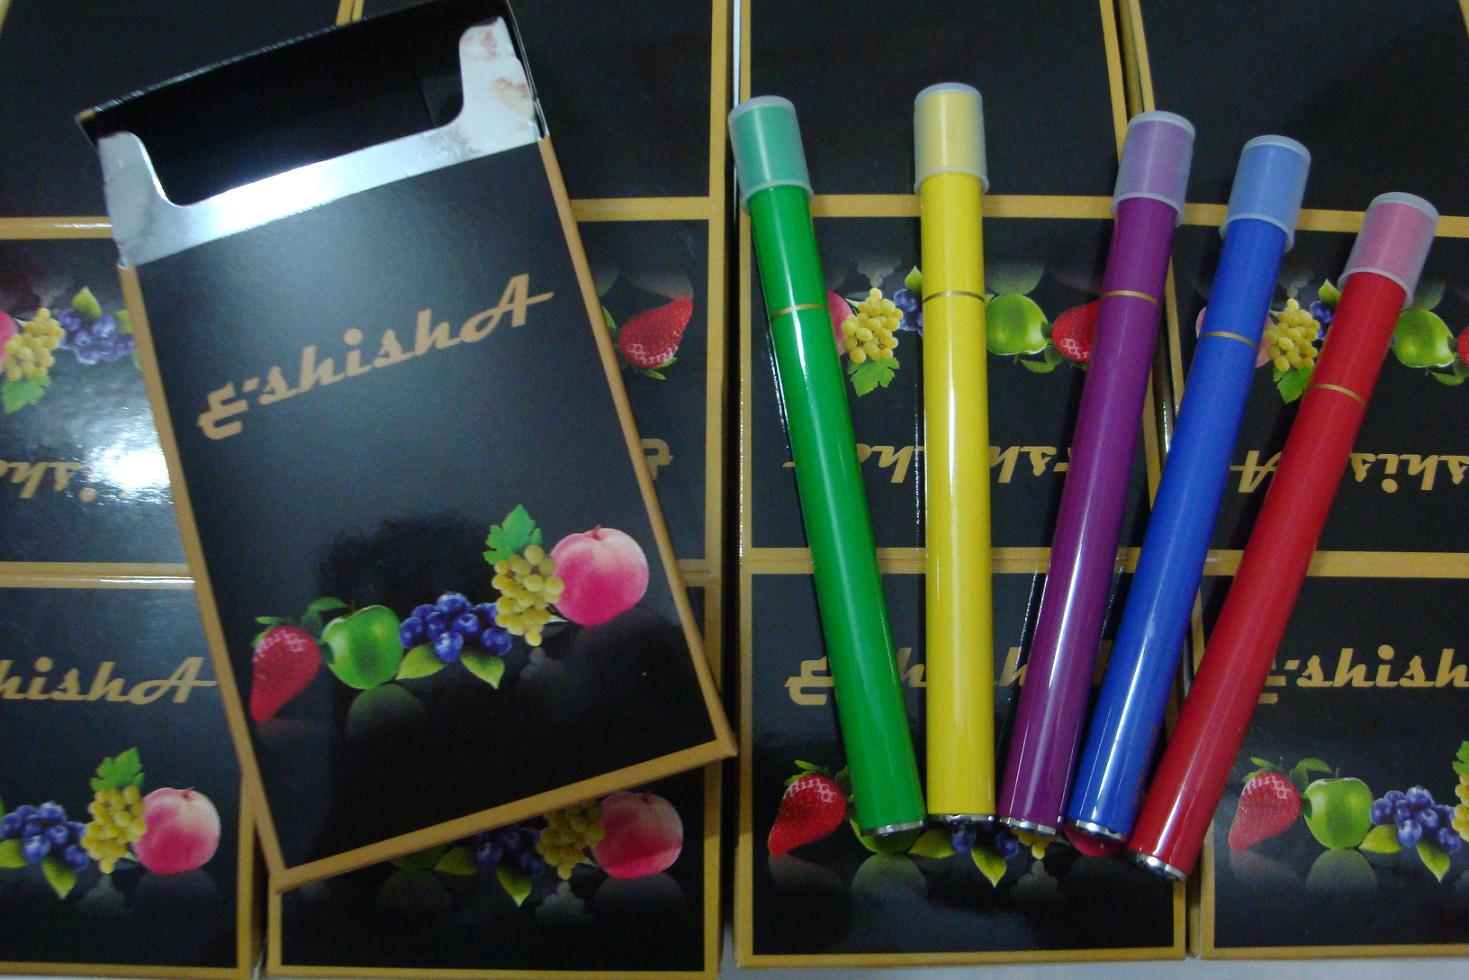 2013 New Style Mini Electronic Cigarette E Shisha Pens